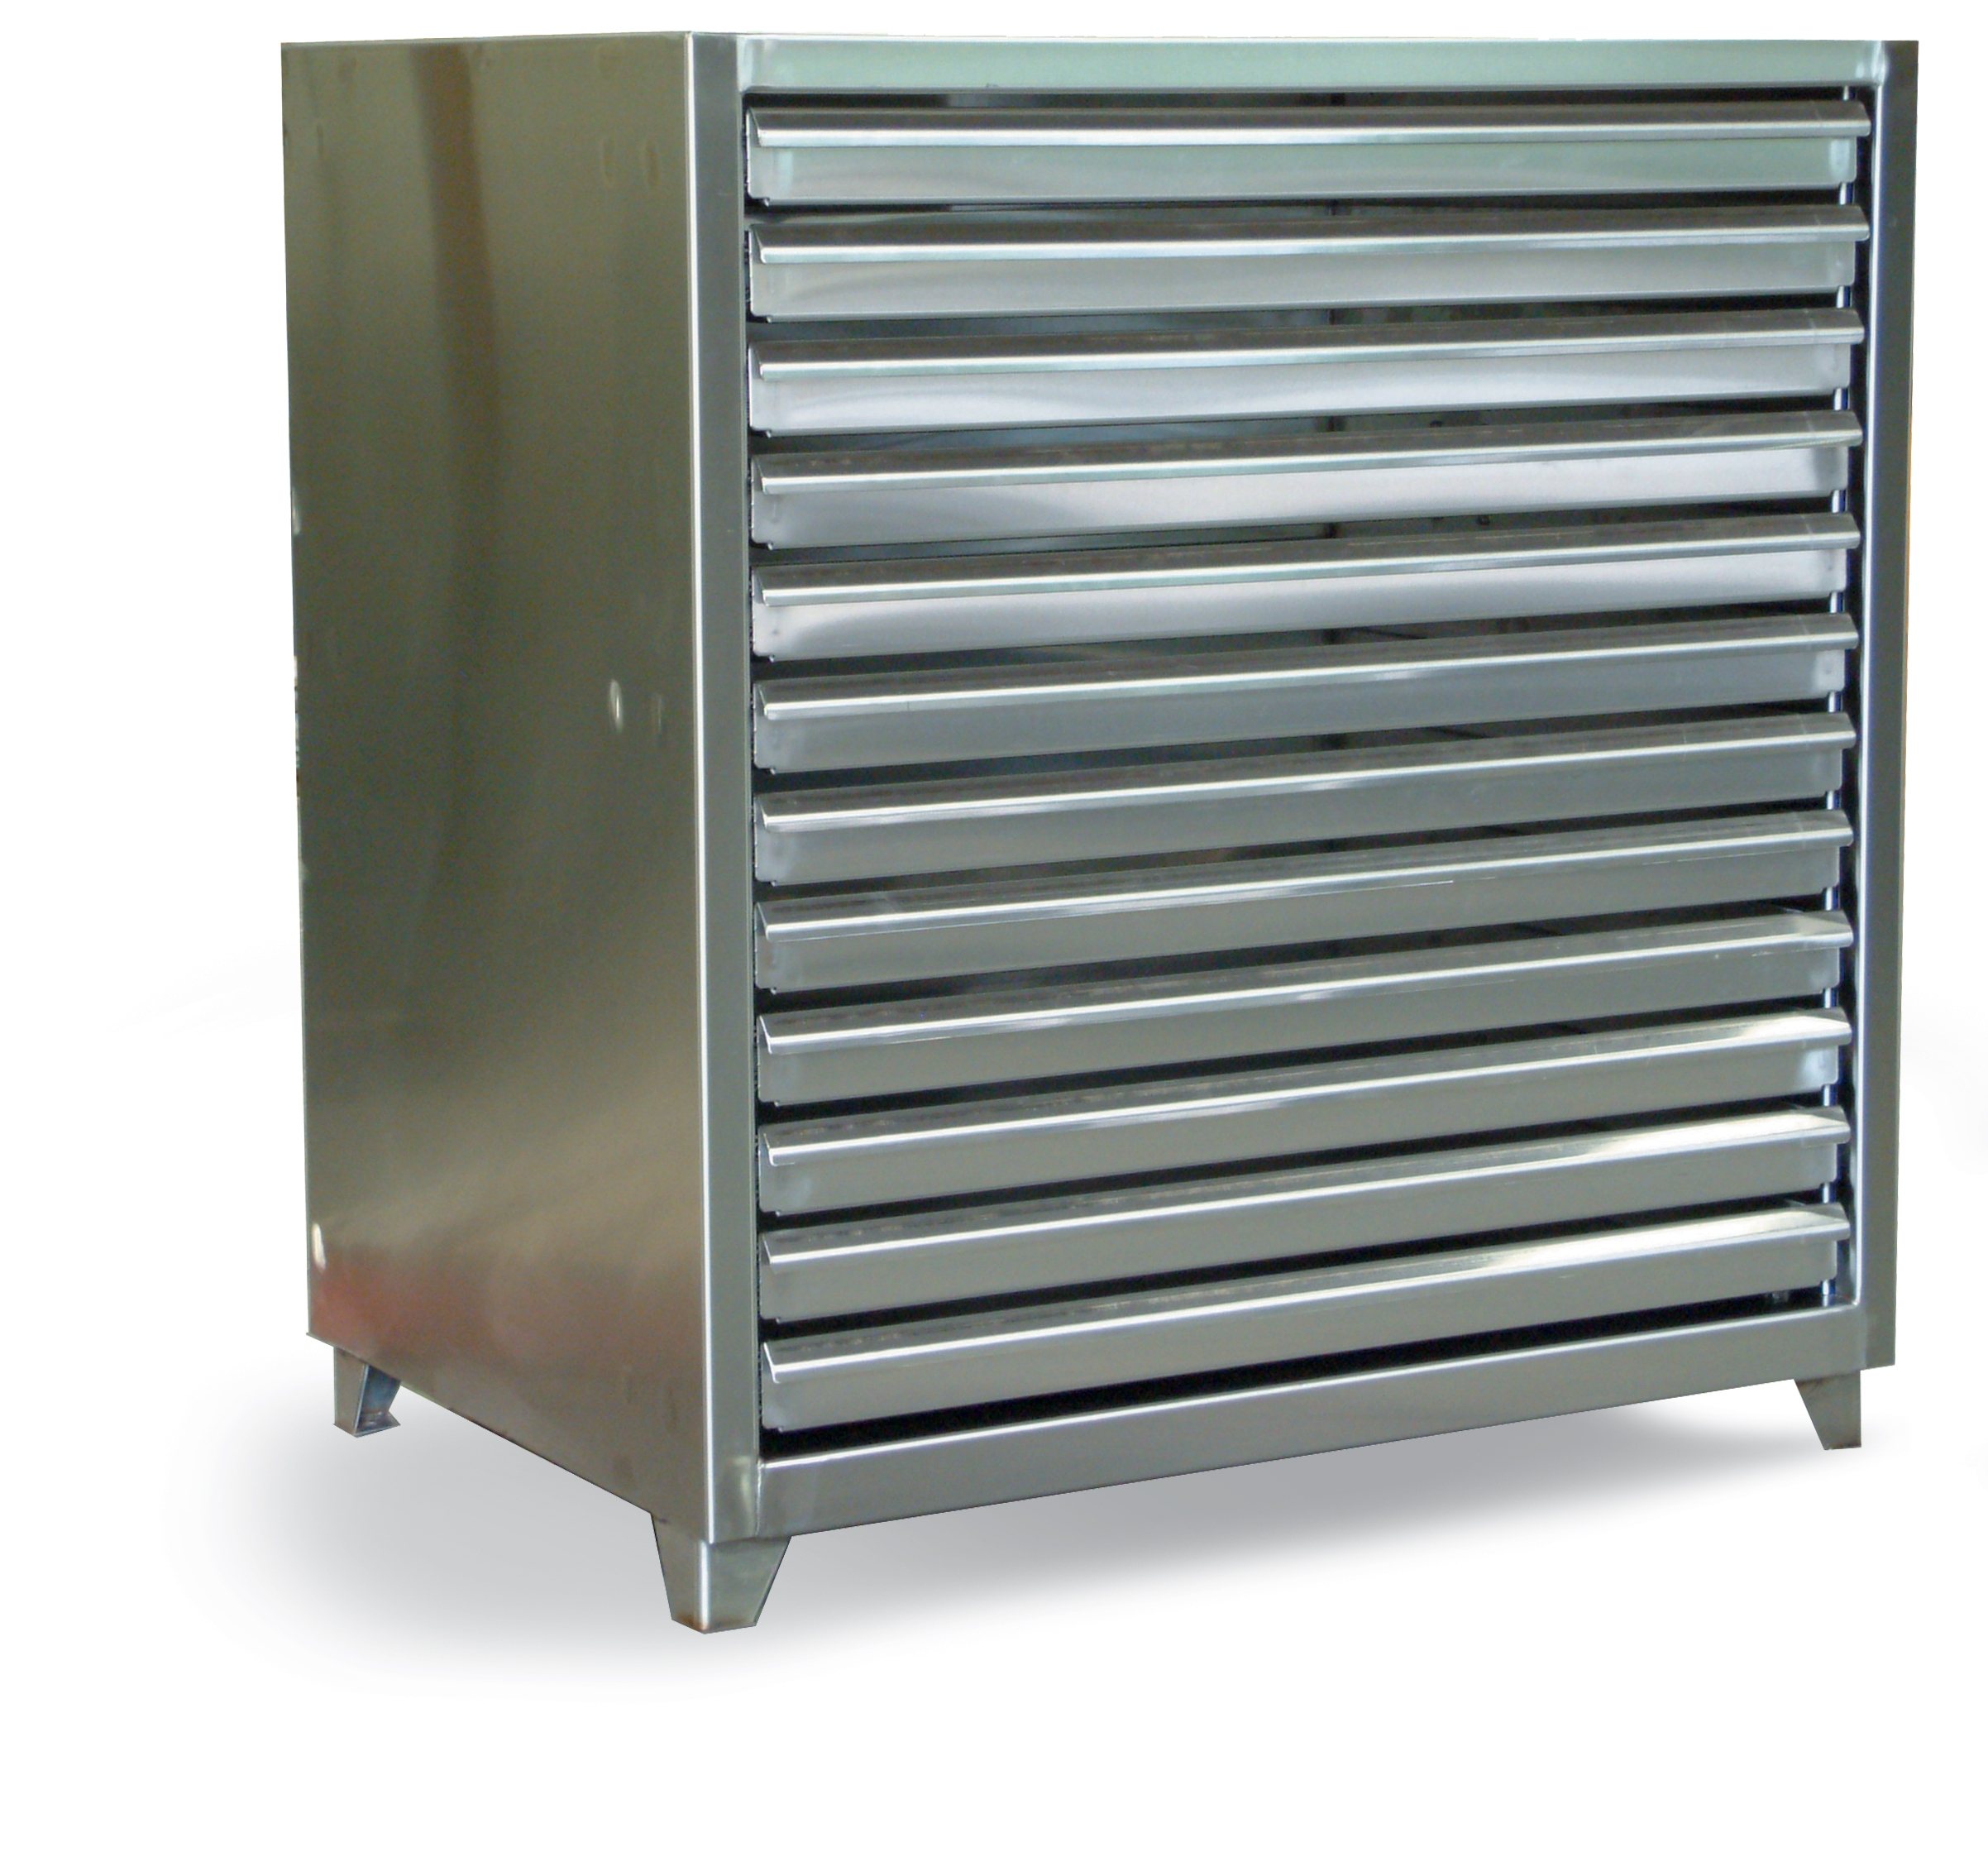 Storage Cabinets Stainless Steelstrong hold products stainless steel print storage cabinet